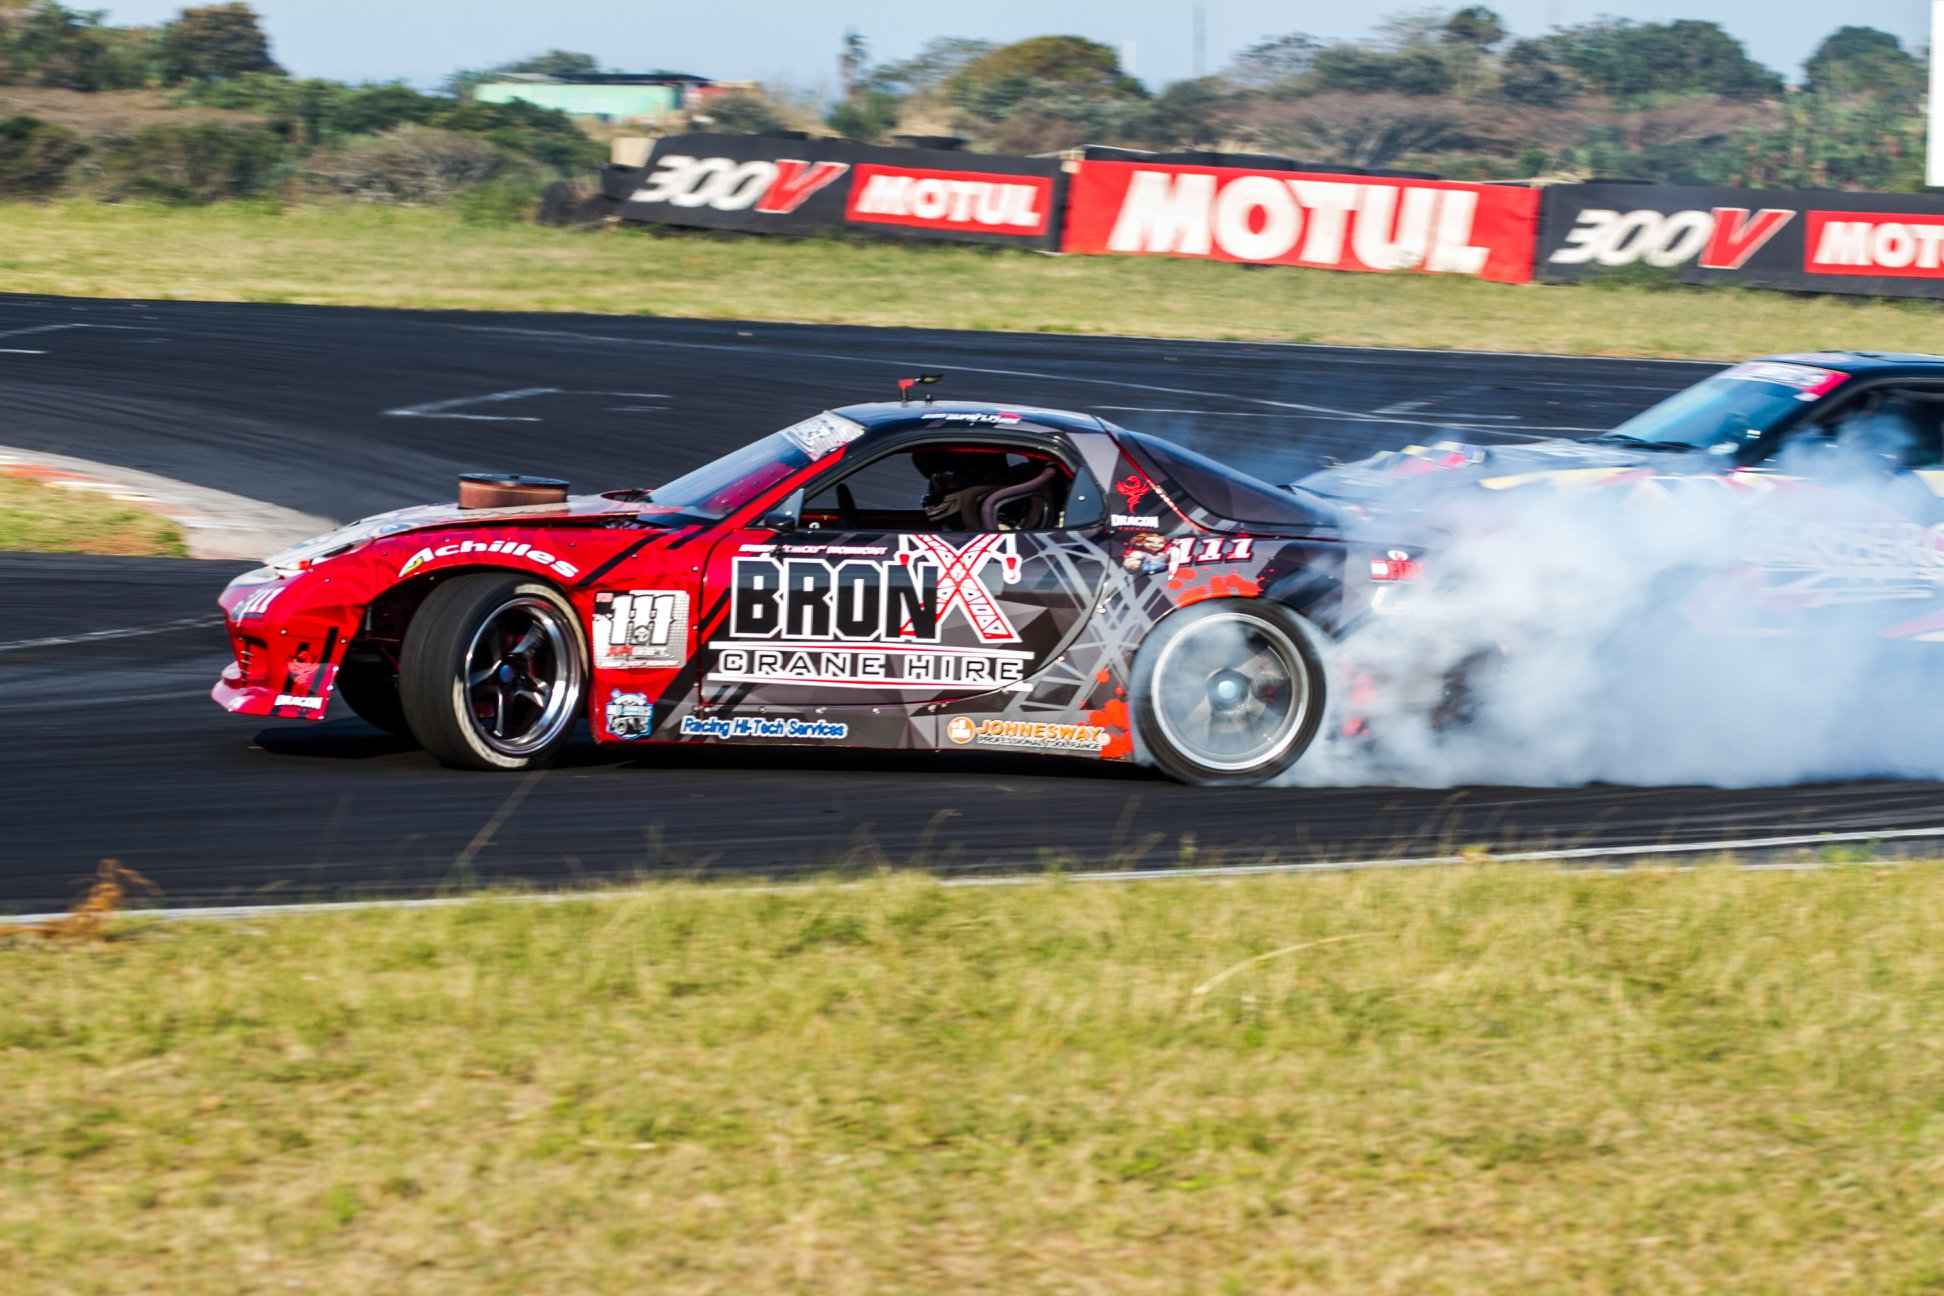 Drifting action from round 5 of the 2018 SupaDrift Series